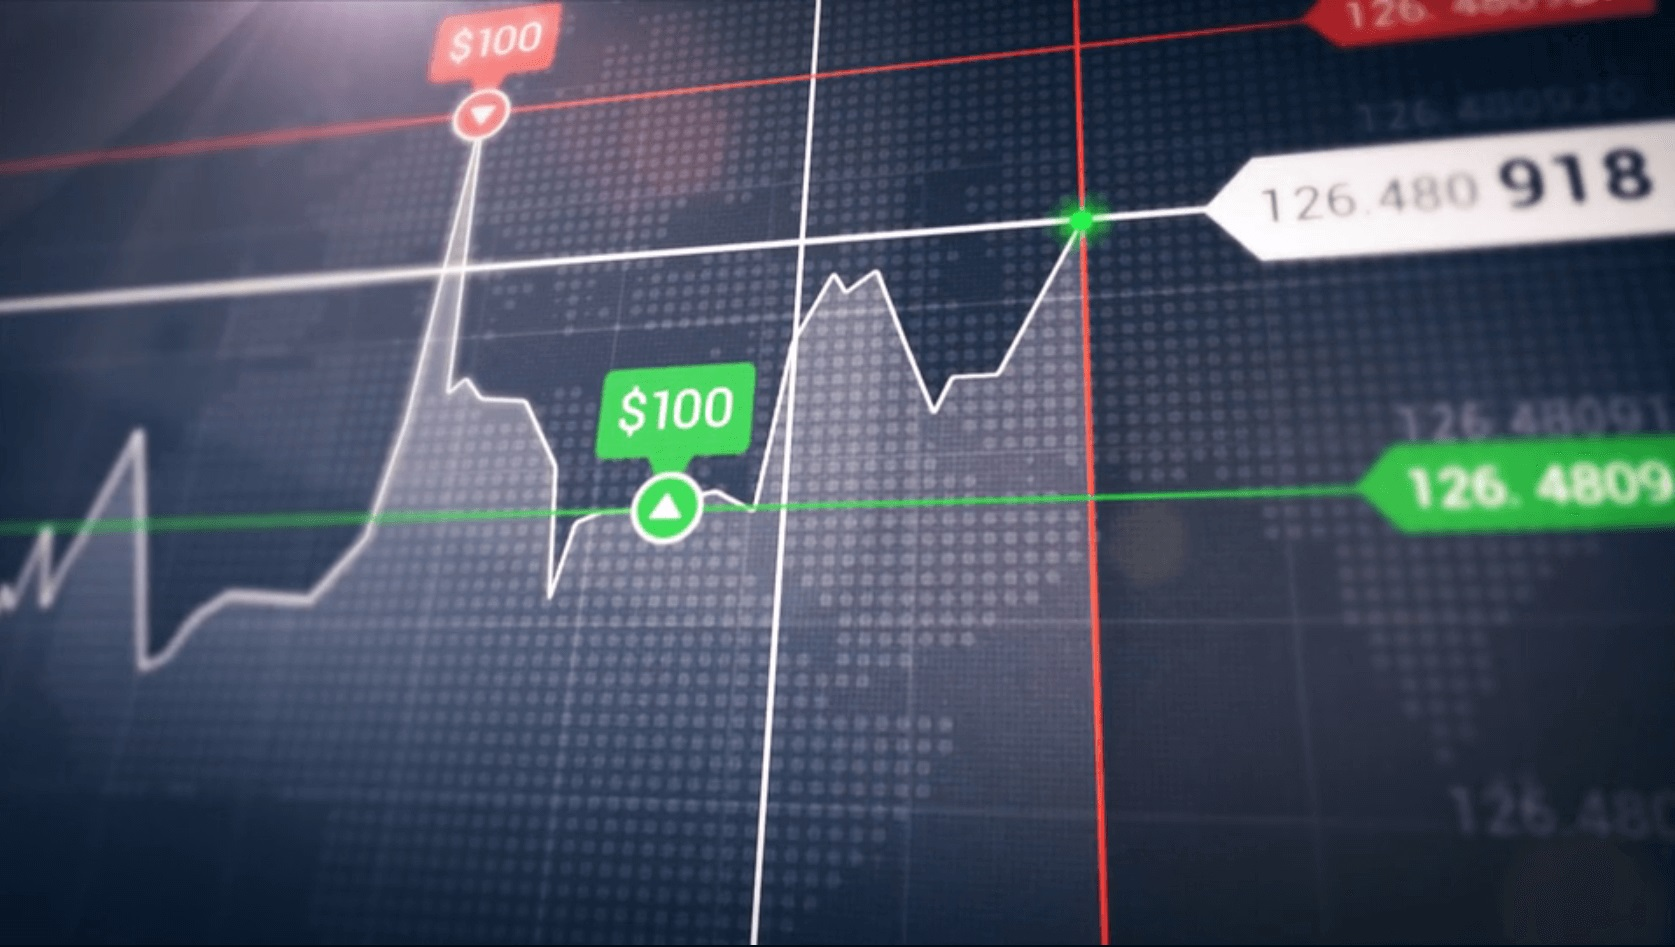 Learn More About Currency Trading